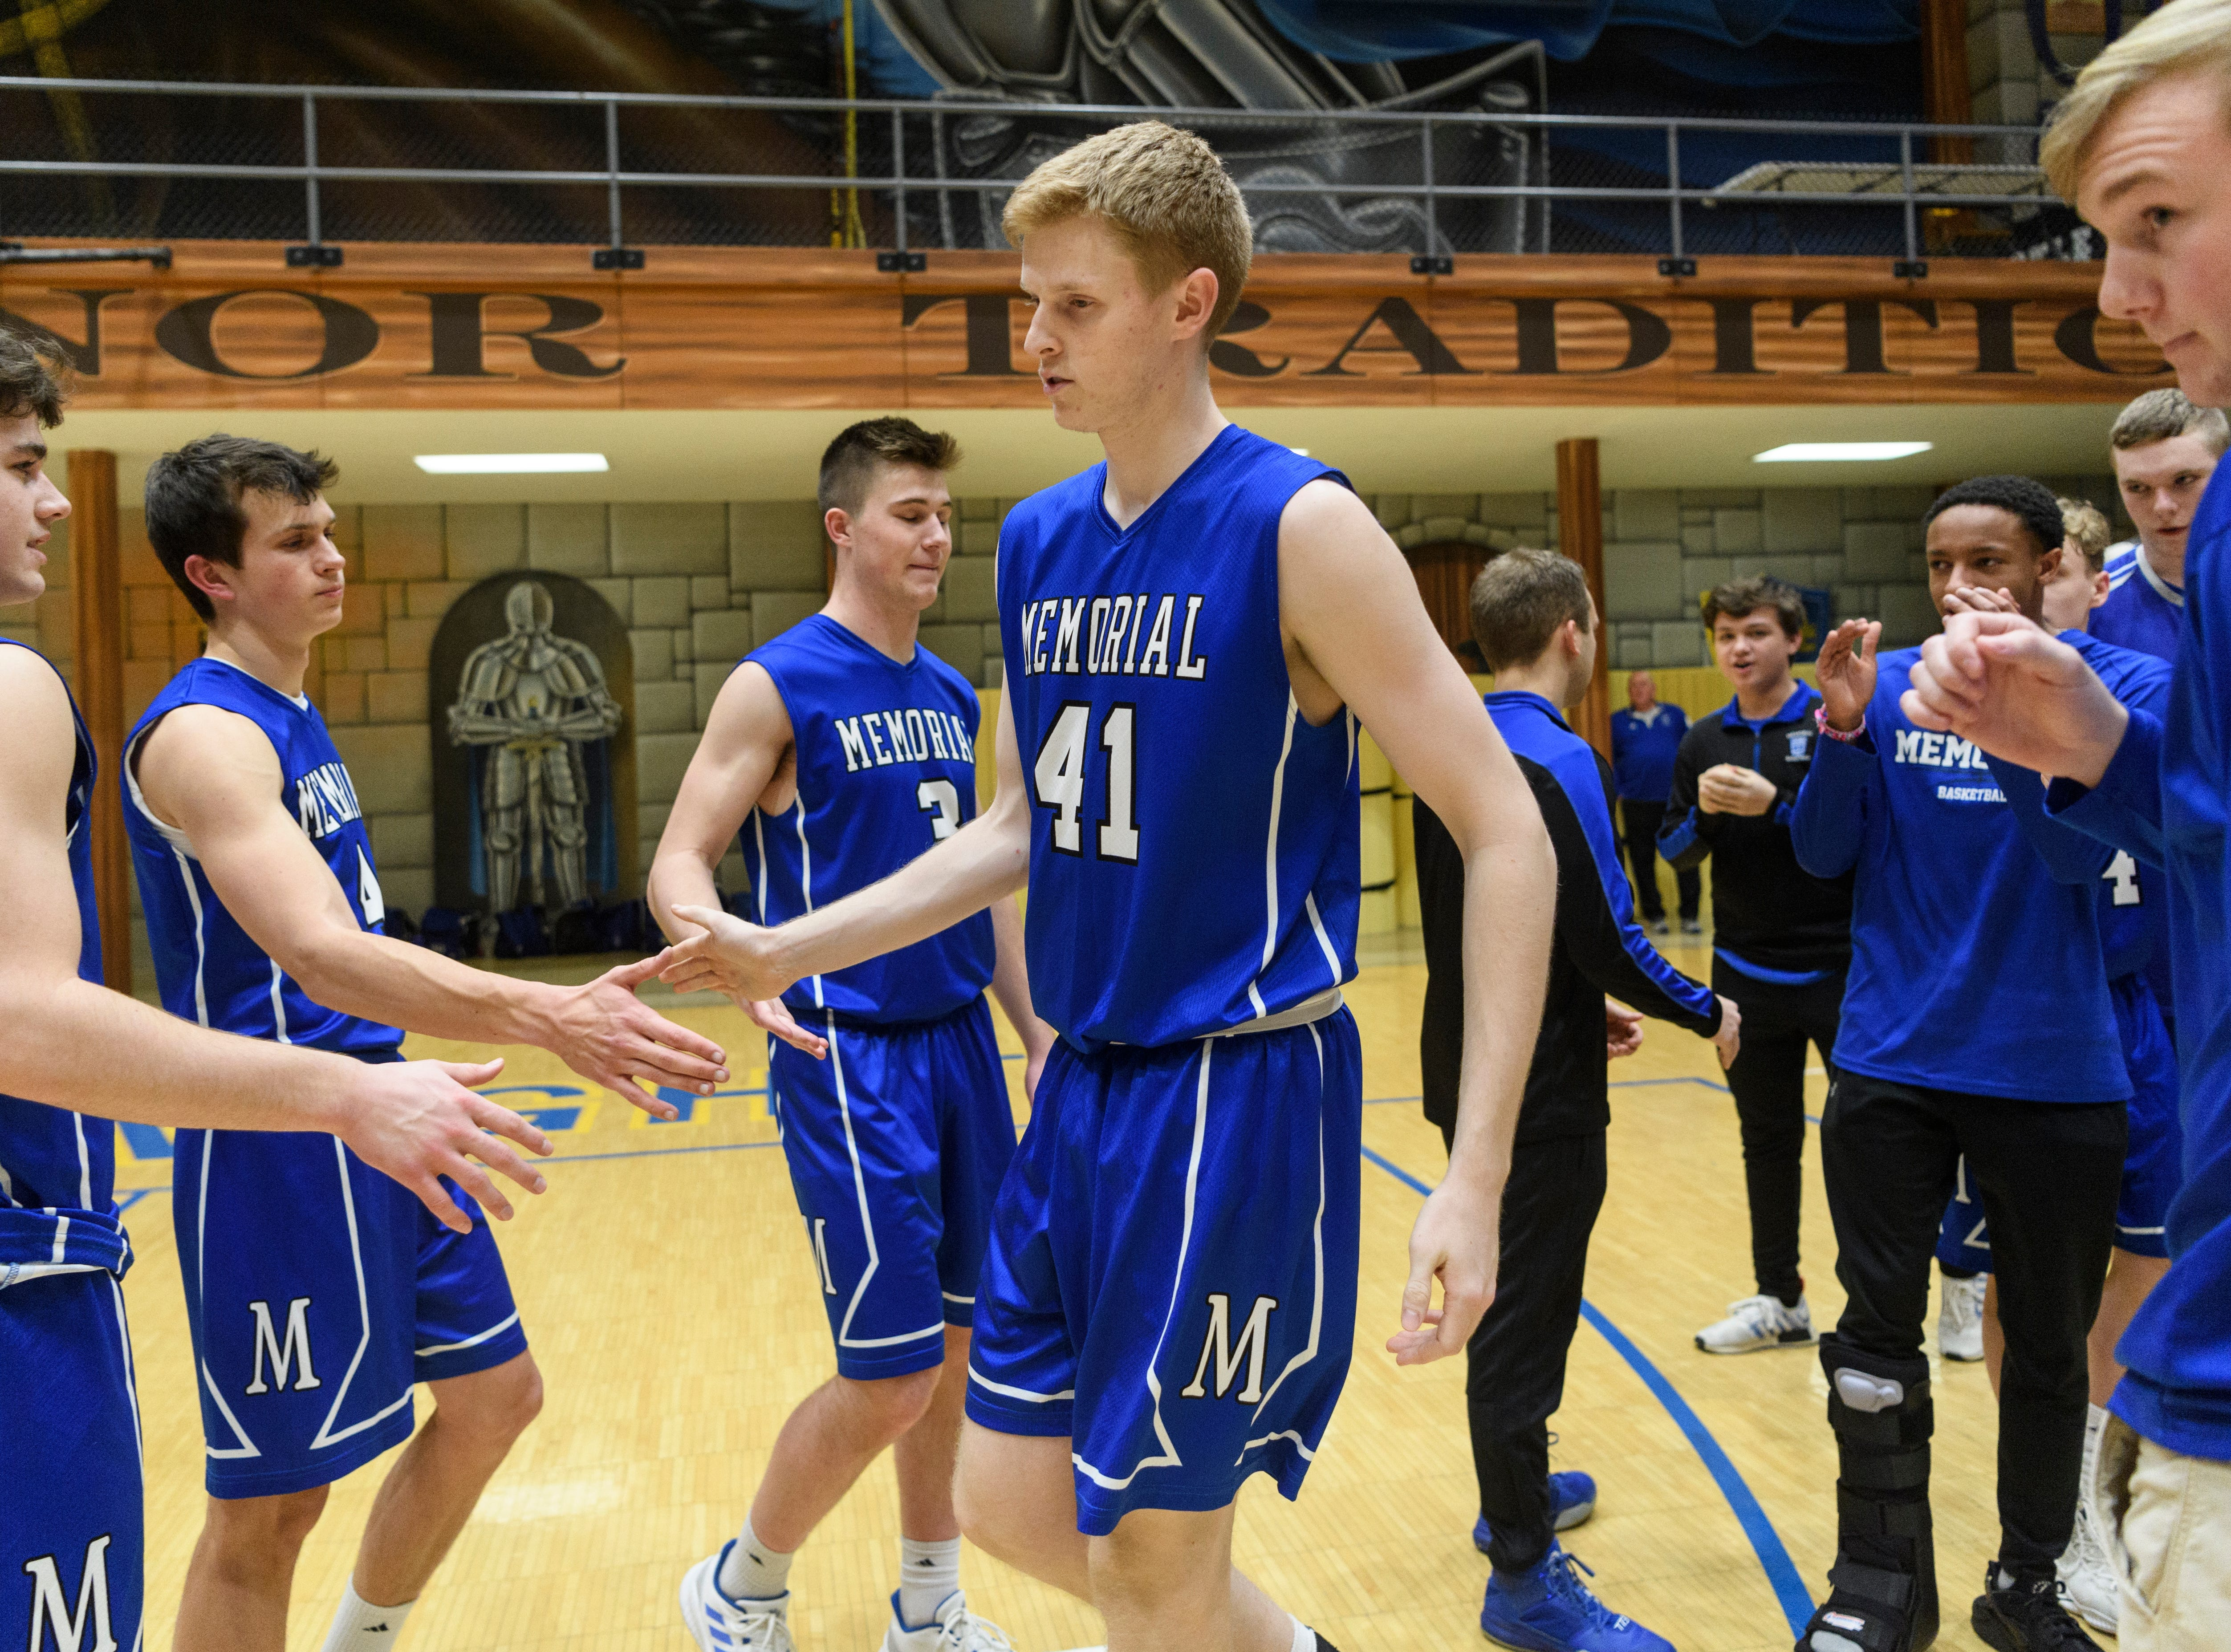 Memorial's Sam DeVault (41) high-fives his teammates after being introduced as a starter before the game against the Castle Knights at Castle High School in Newburgh, Ind., Friday, Jan. 4, 2019. The Knights defeated the Tigers, 72-43.